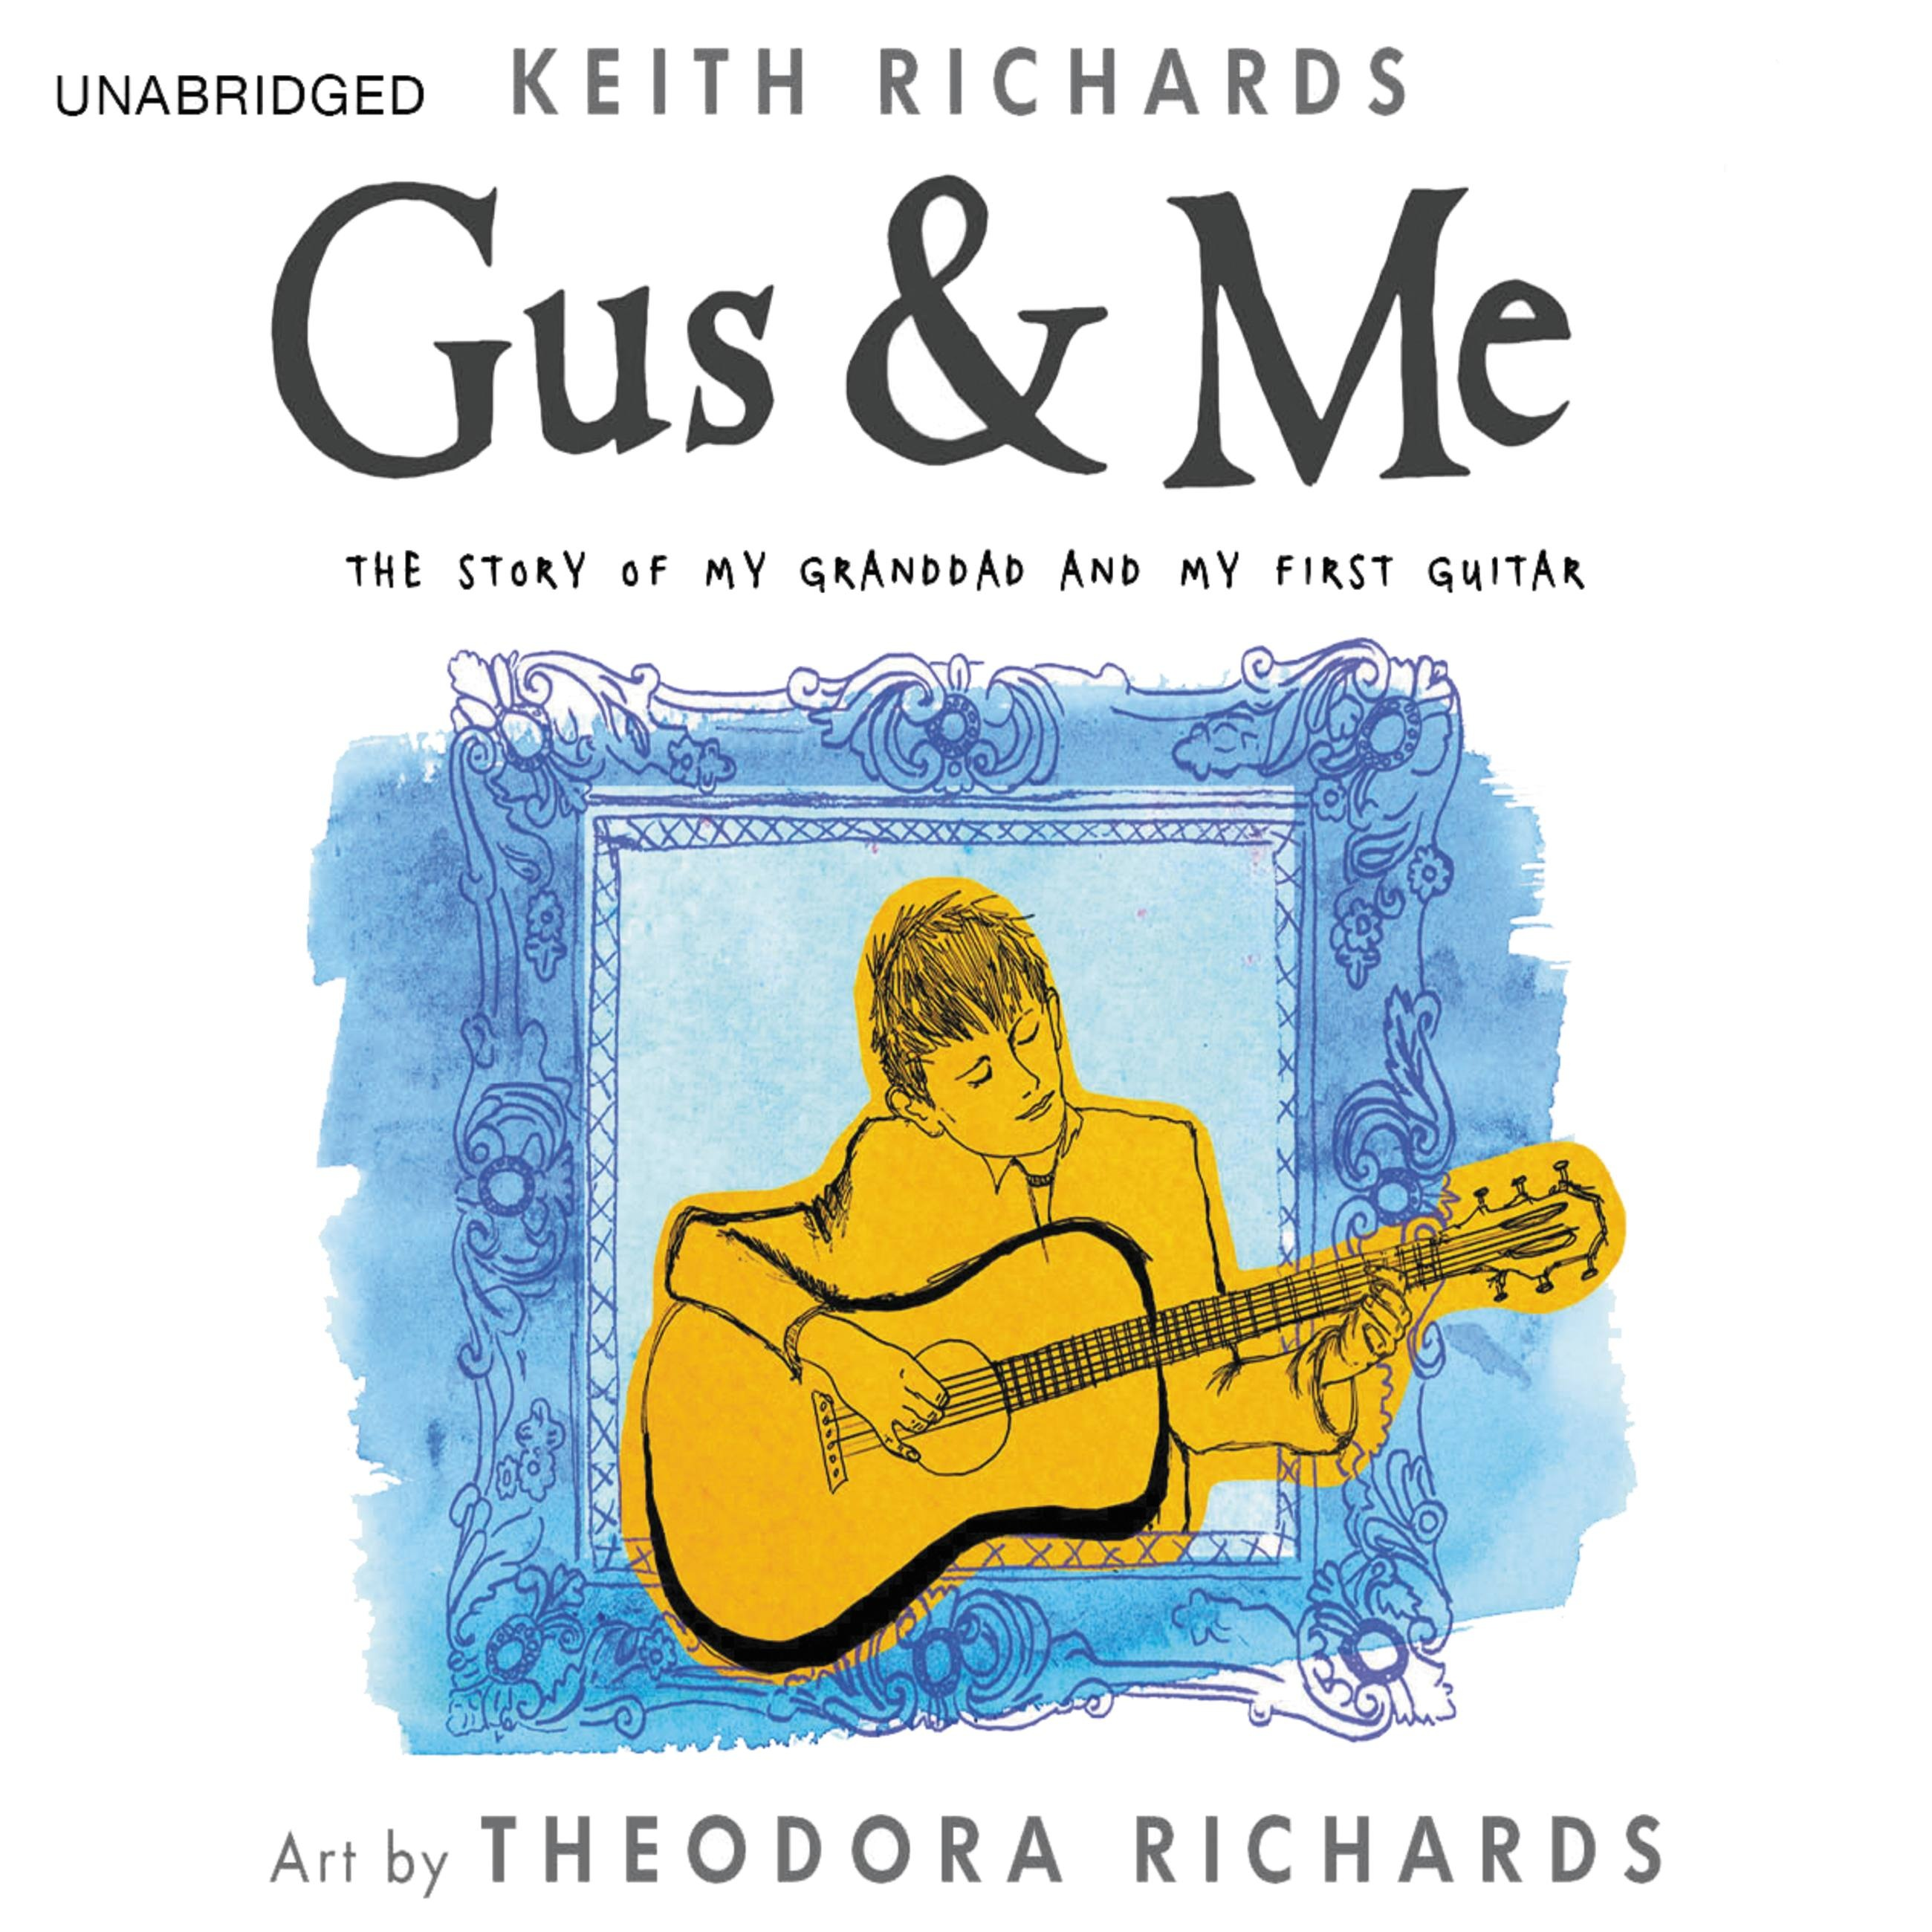 Libro De Keith Richards Gus Me